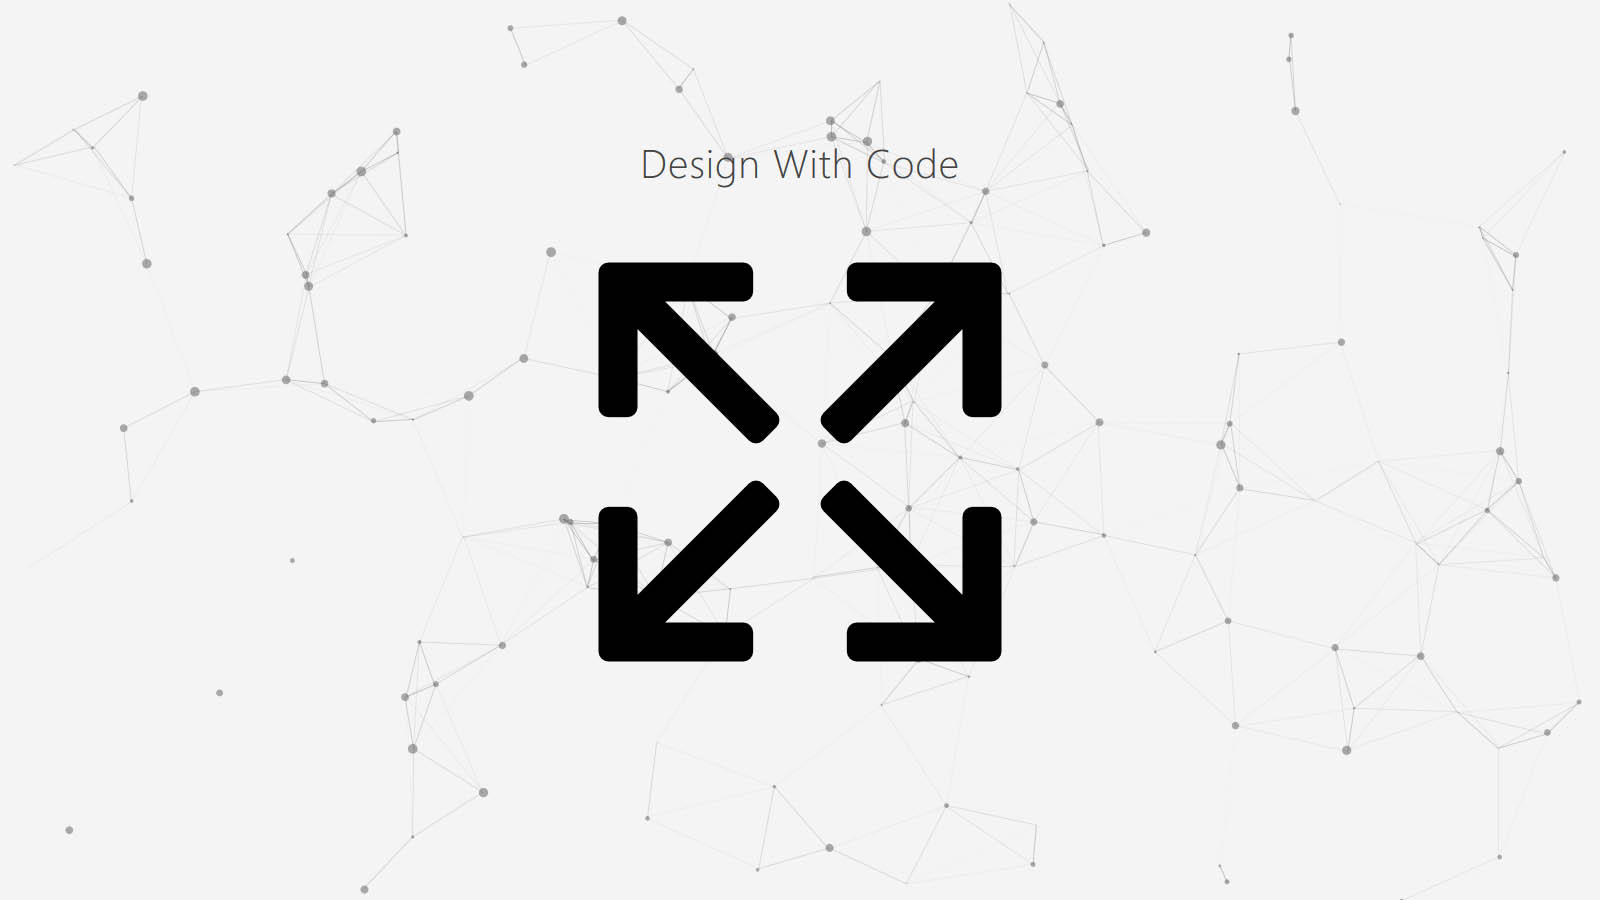 Design With Code is a one-page website with some scrolling animation.